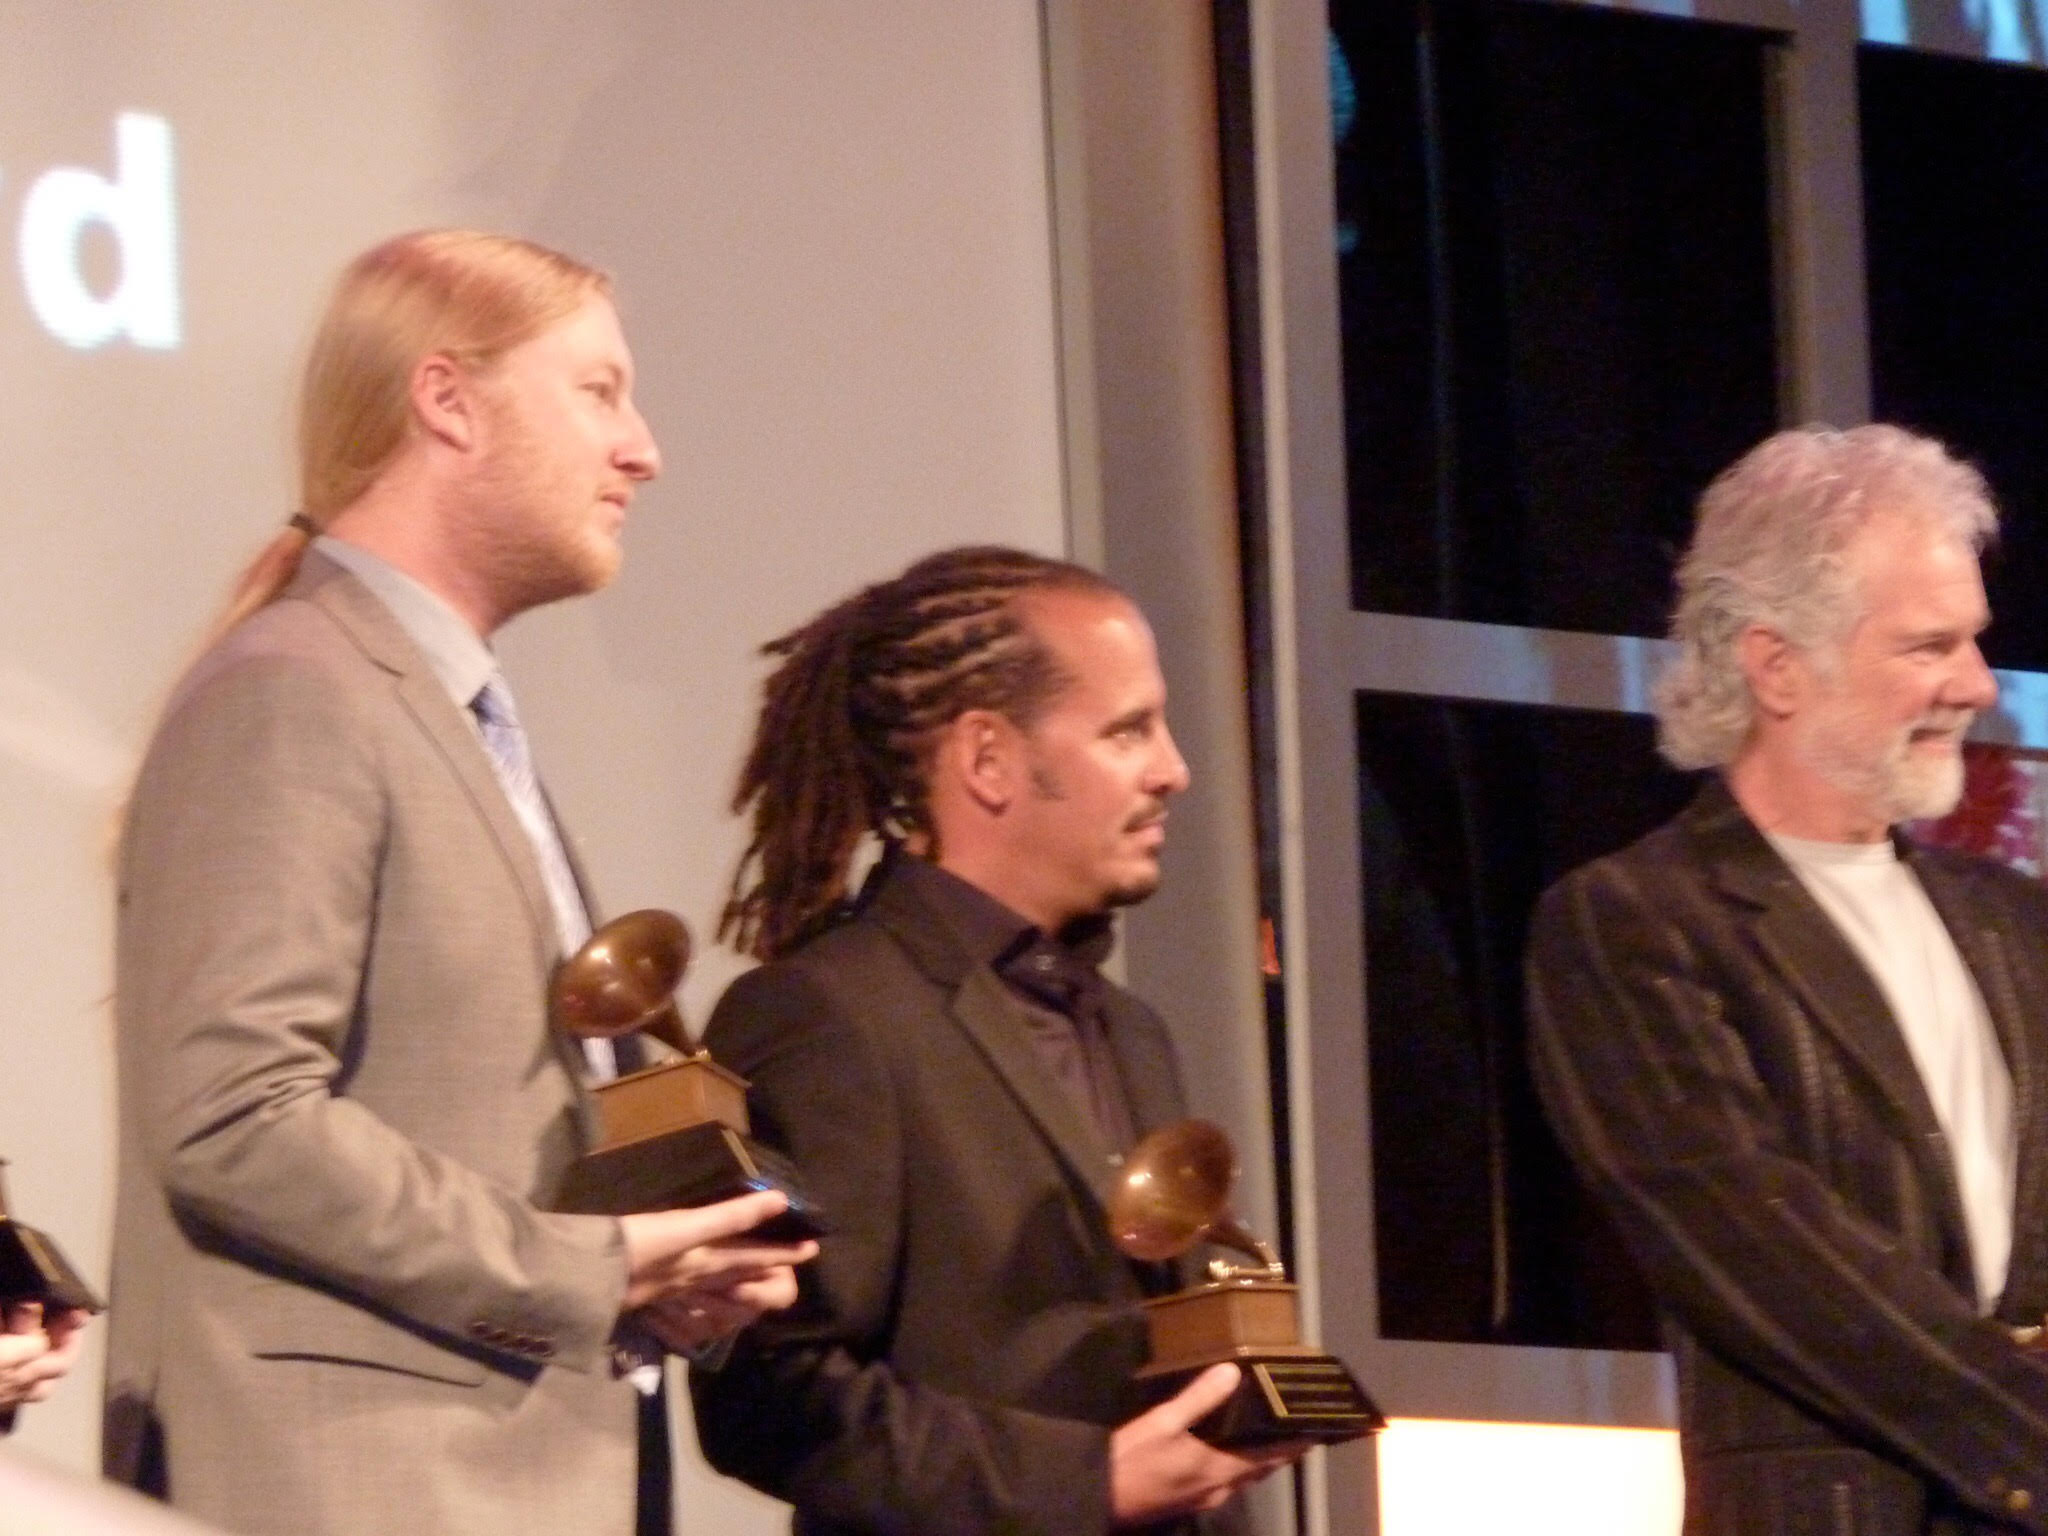 Receiving the lifetime acheivement award with the Allman Brothers.